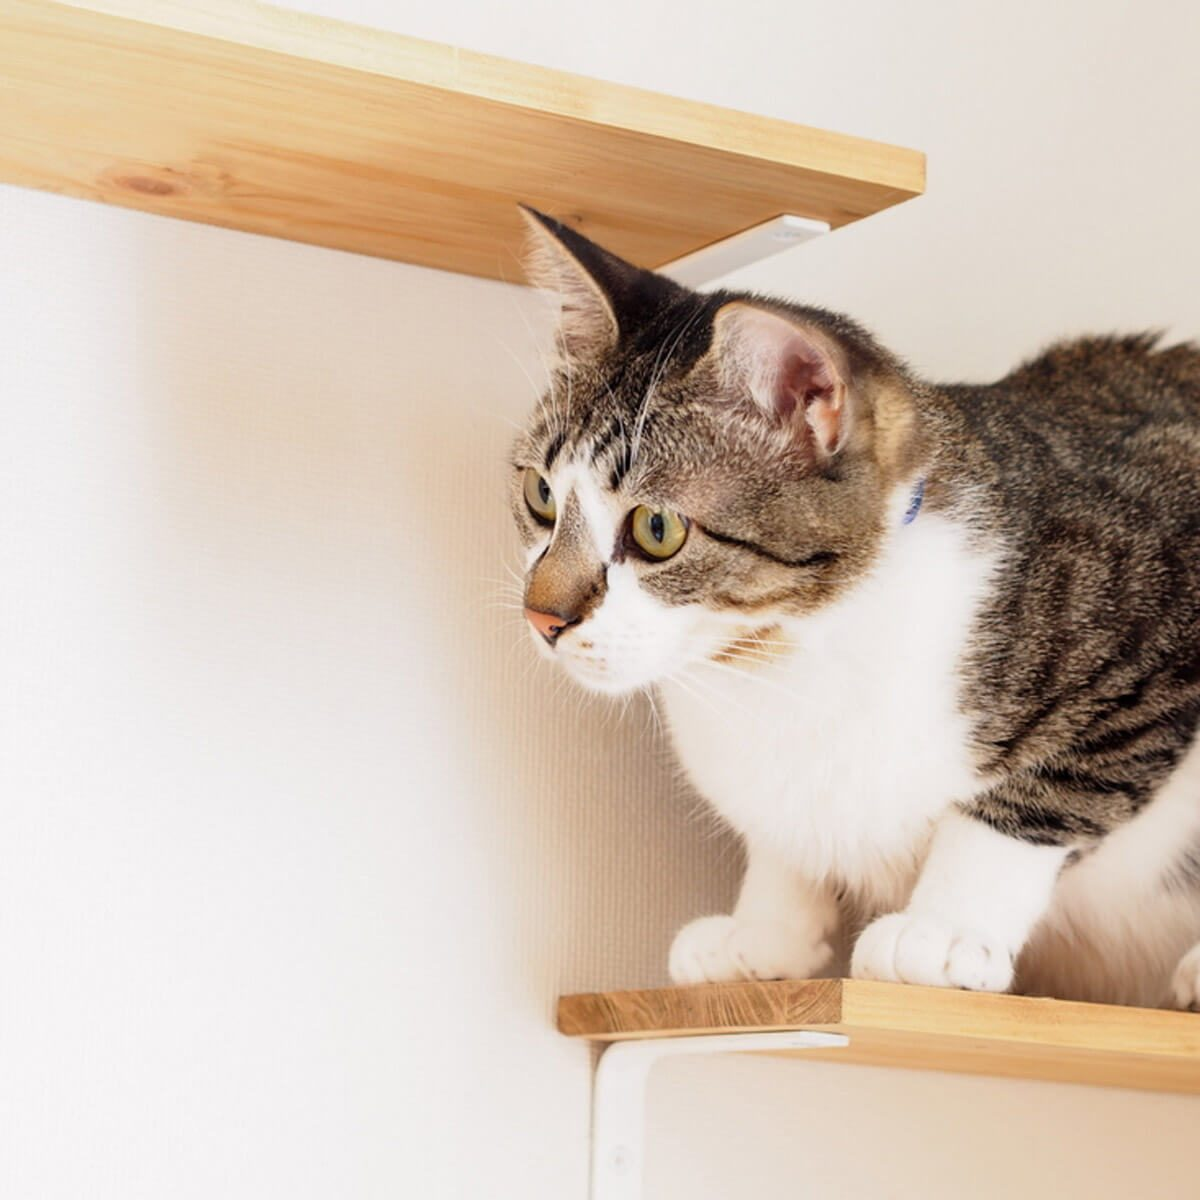 11 awesome ideas for diy cat furniture | the family handyman